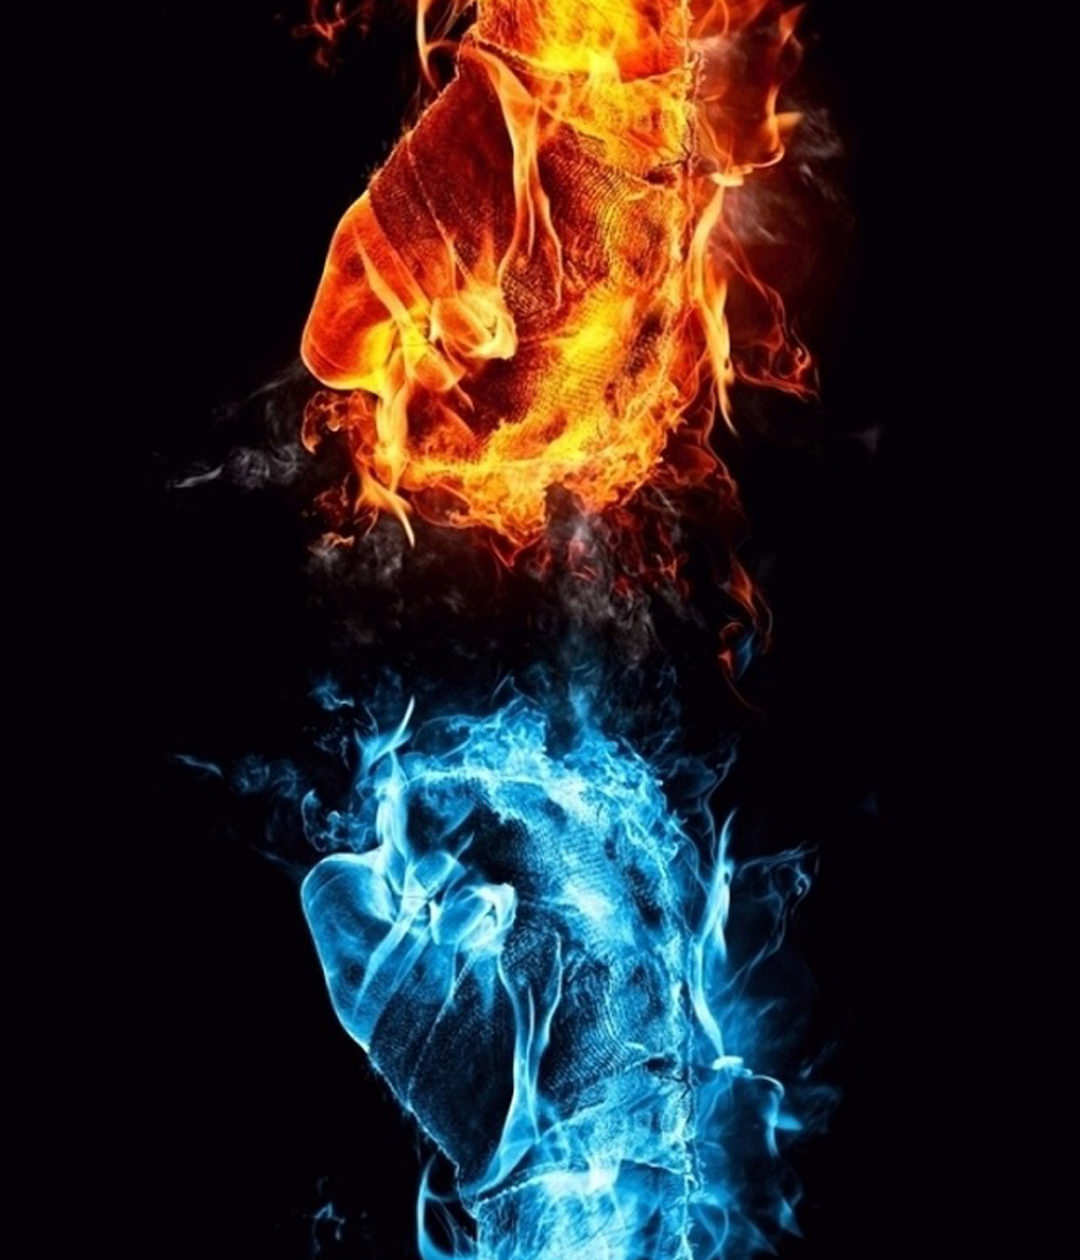 Blue & Red Fire Fist Background